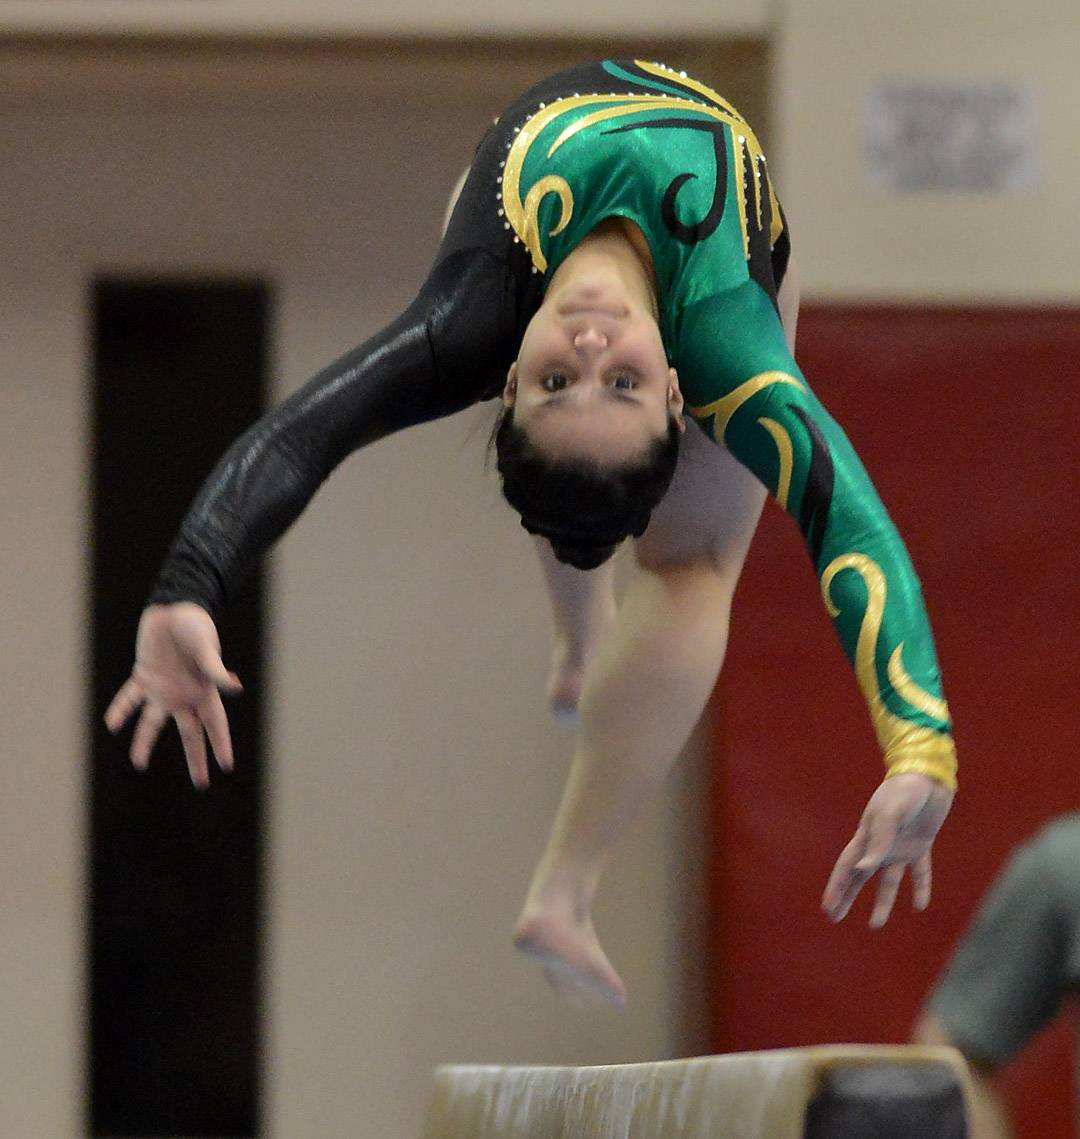 Alyssa Weisberg of Stevenson taking first place on the balance beam at State Girls Gymnastics Saturday at Palatine High School.